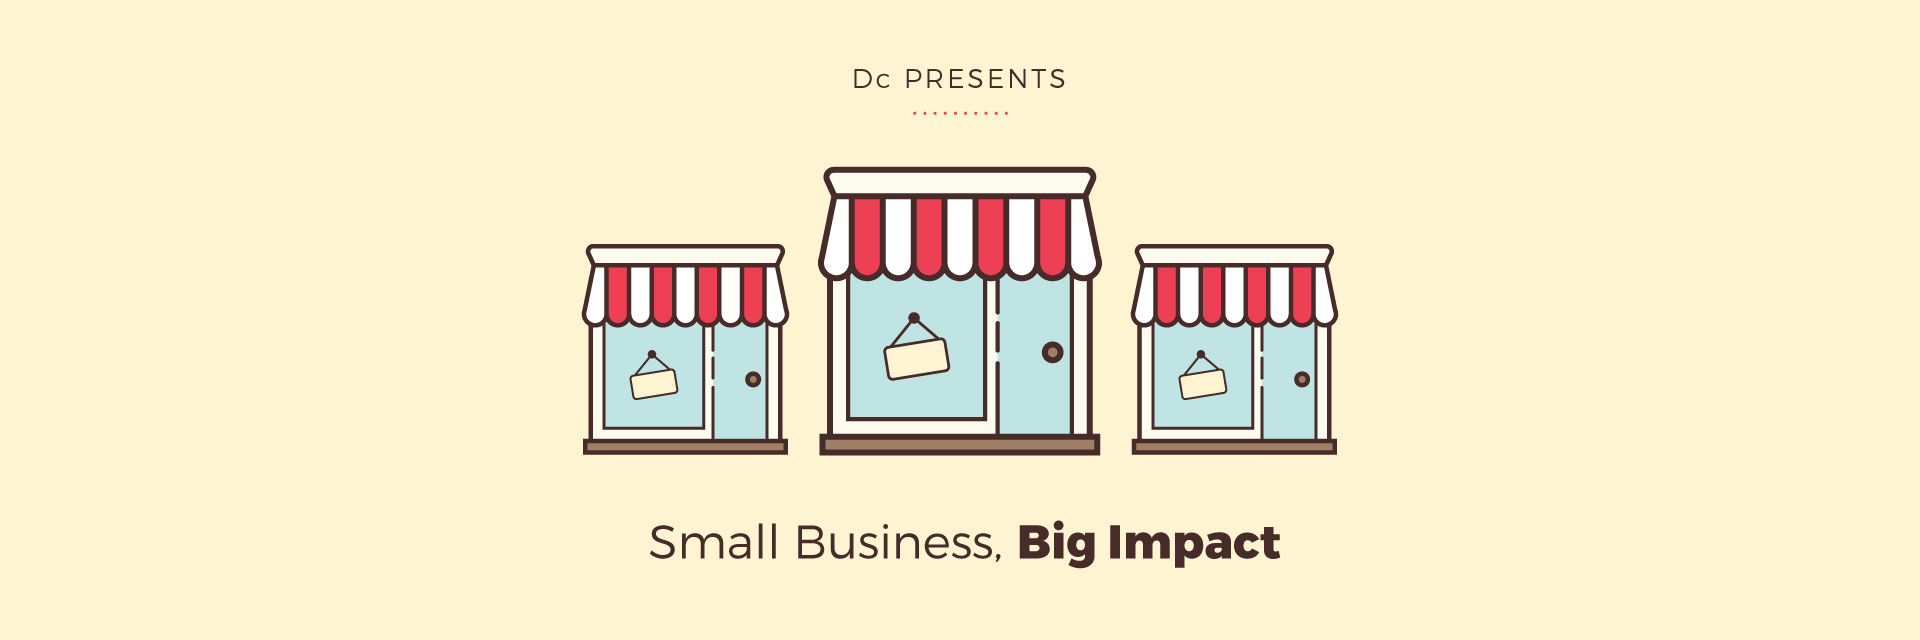 Dc presents: Small Business, Big Impact